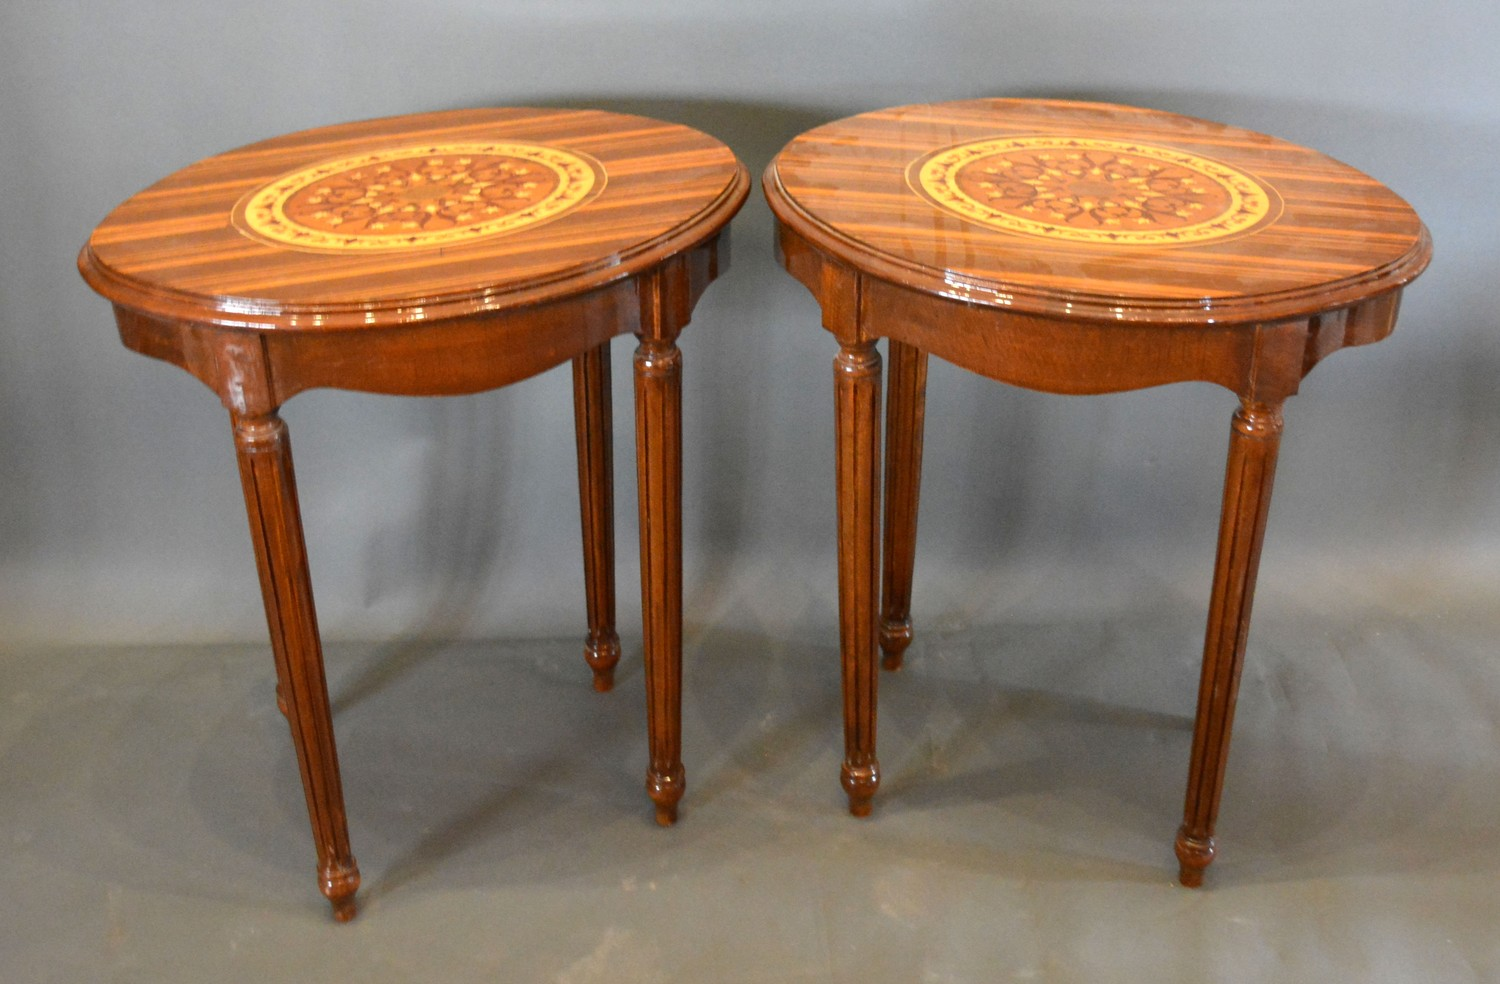 A Pair of French marquetry inlaid oval lamp tables each with an oval marquetry inlaid moulded top